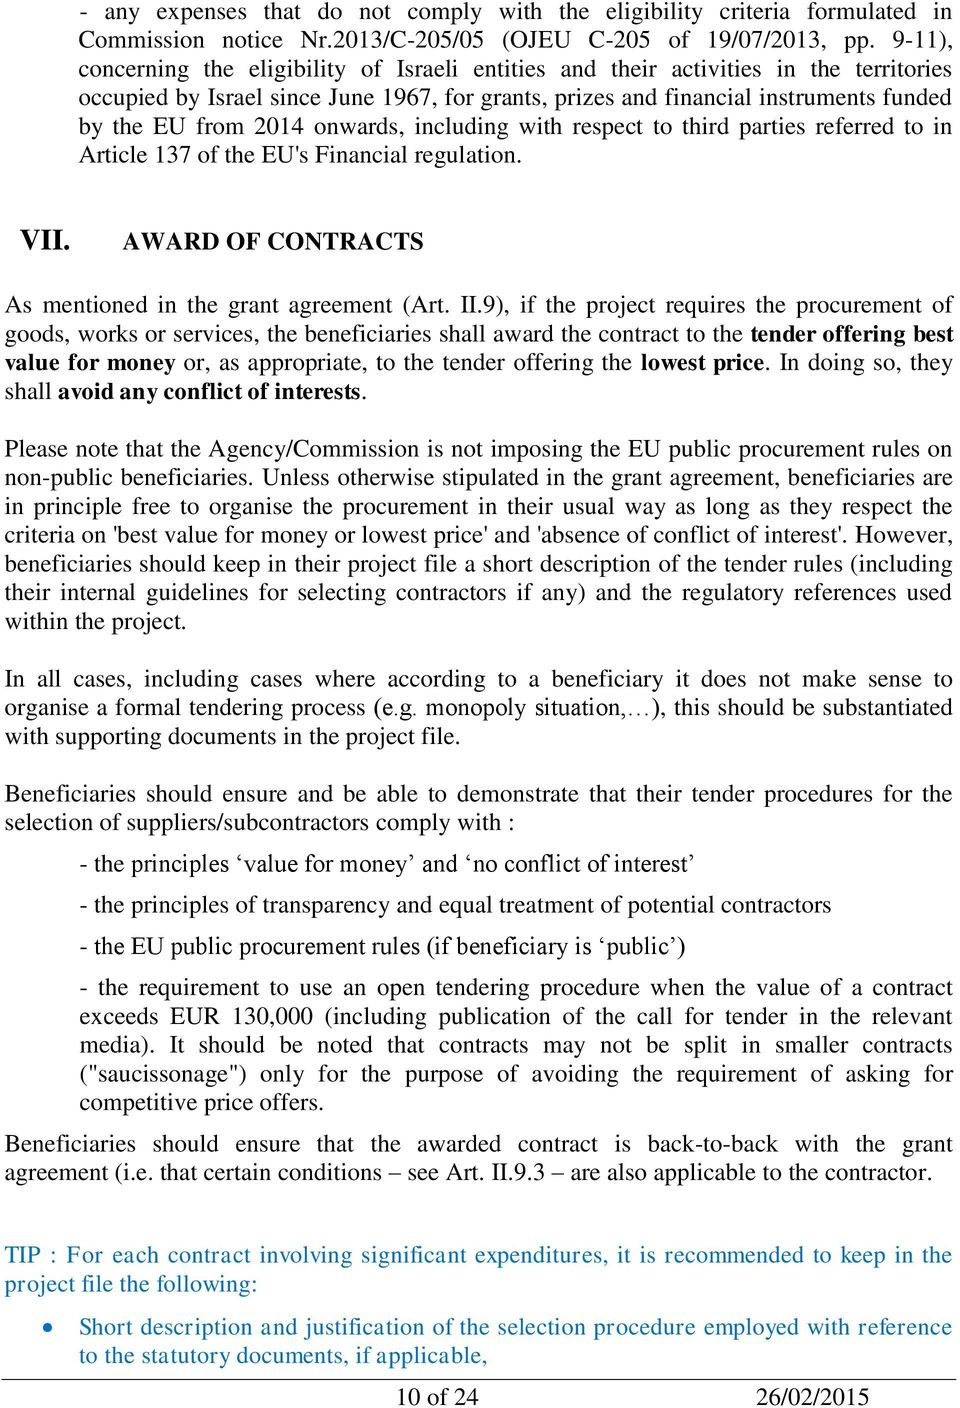 2014 onwards, including with respect to third parties referred to in Article 137 of the EU's Financial regulation. VII. AWARD OF CONTRACTS As mentioned in the grant agreement (Art. II.